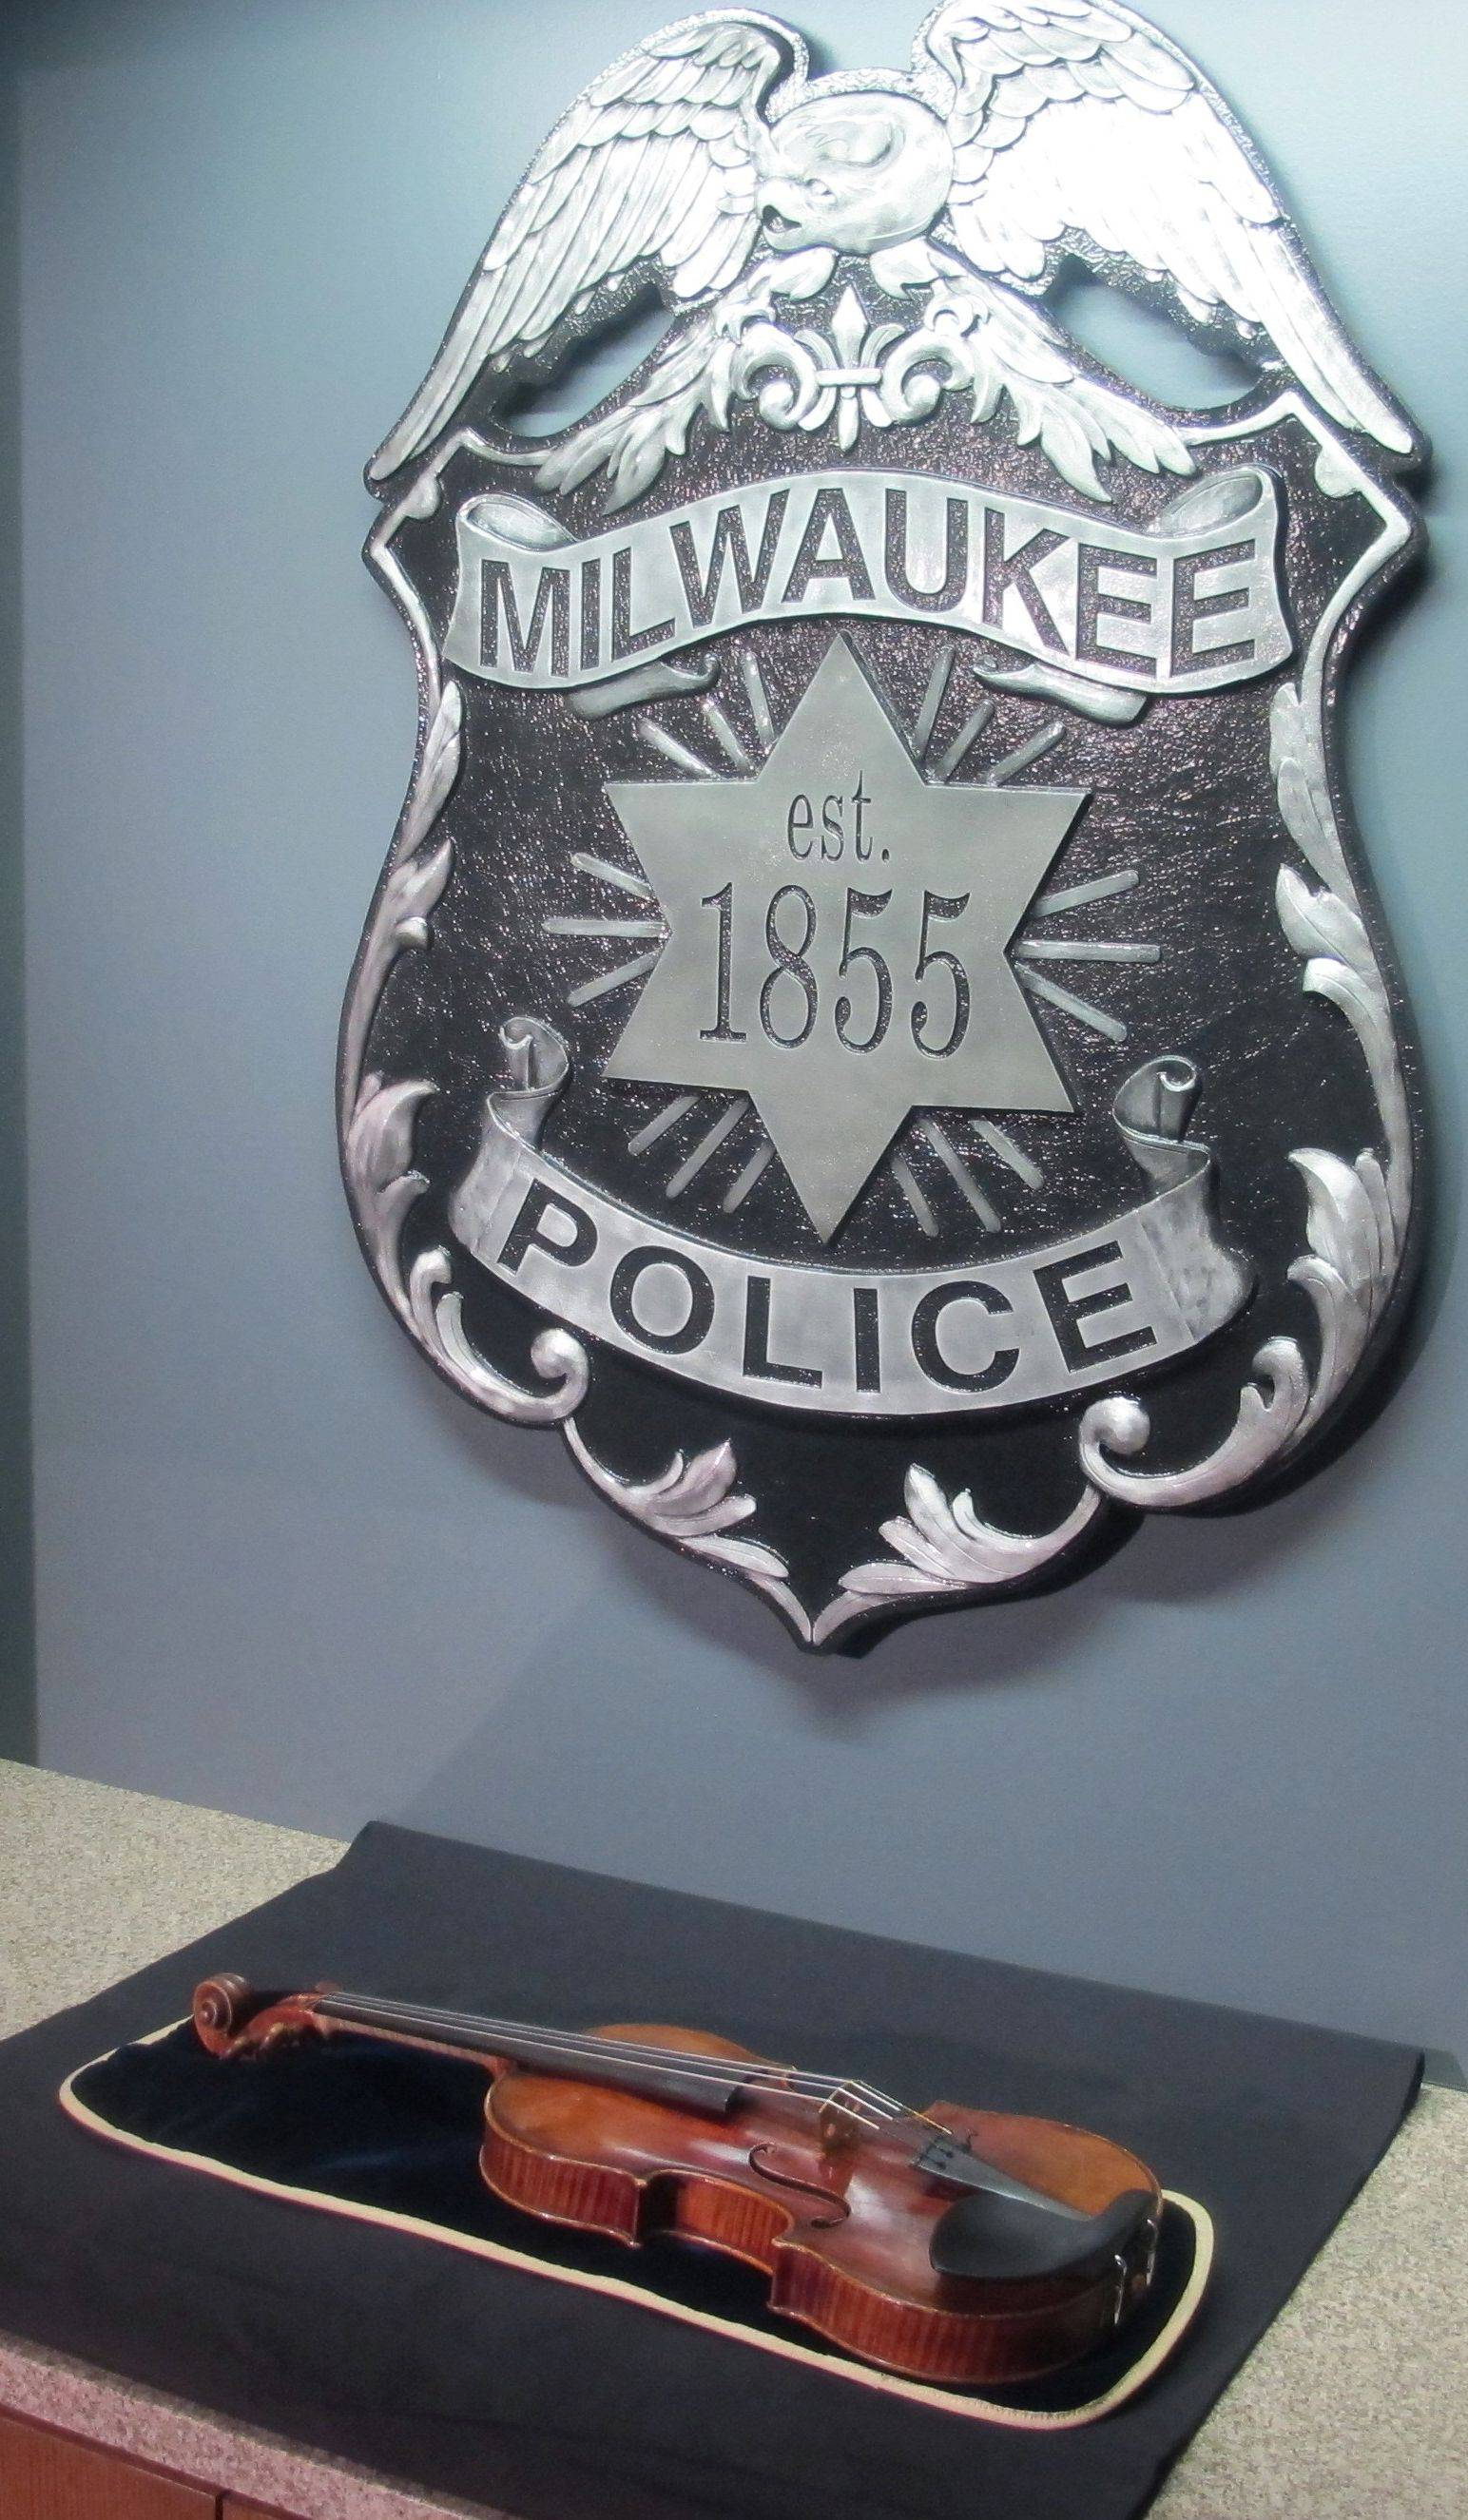 A $5 million Stradivarius violin is displayed at the Milwaukee Police Department Thursday.